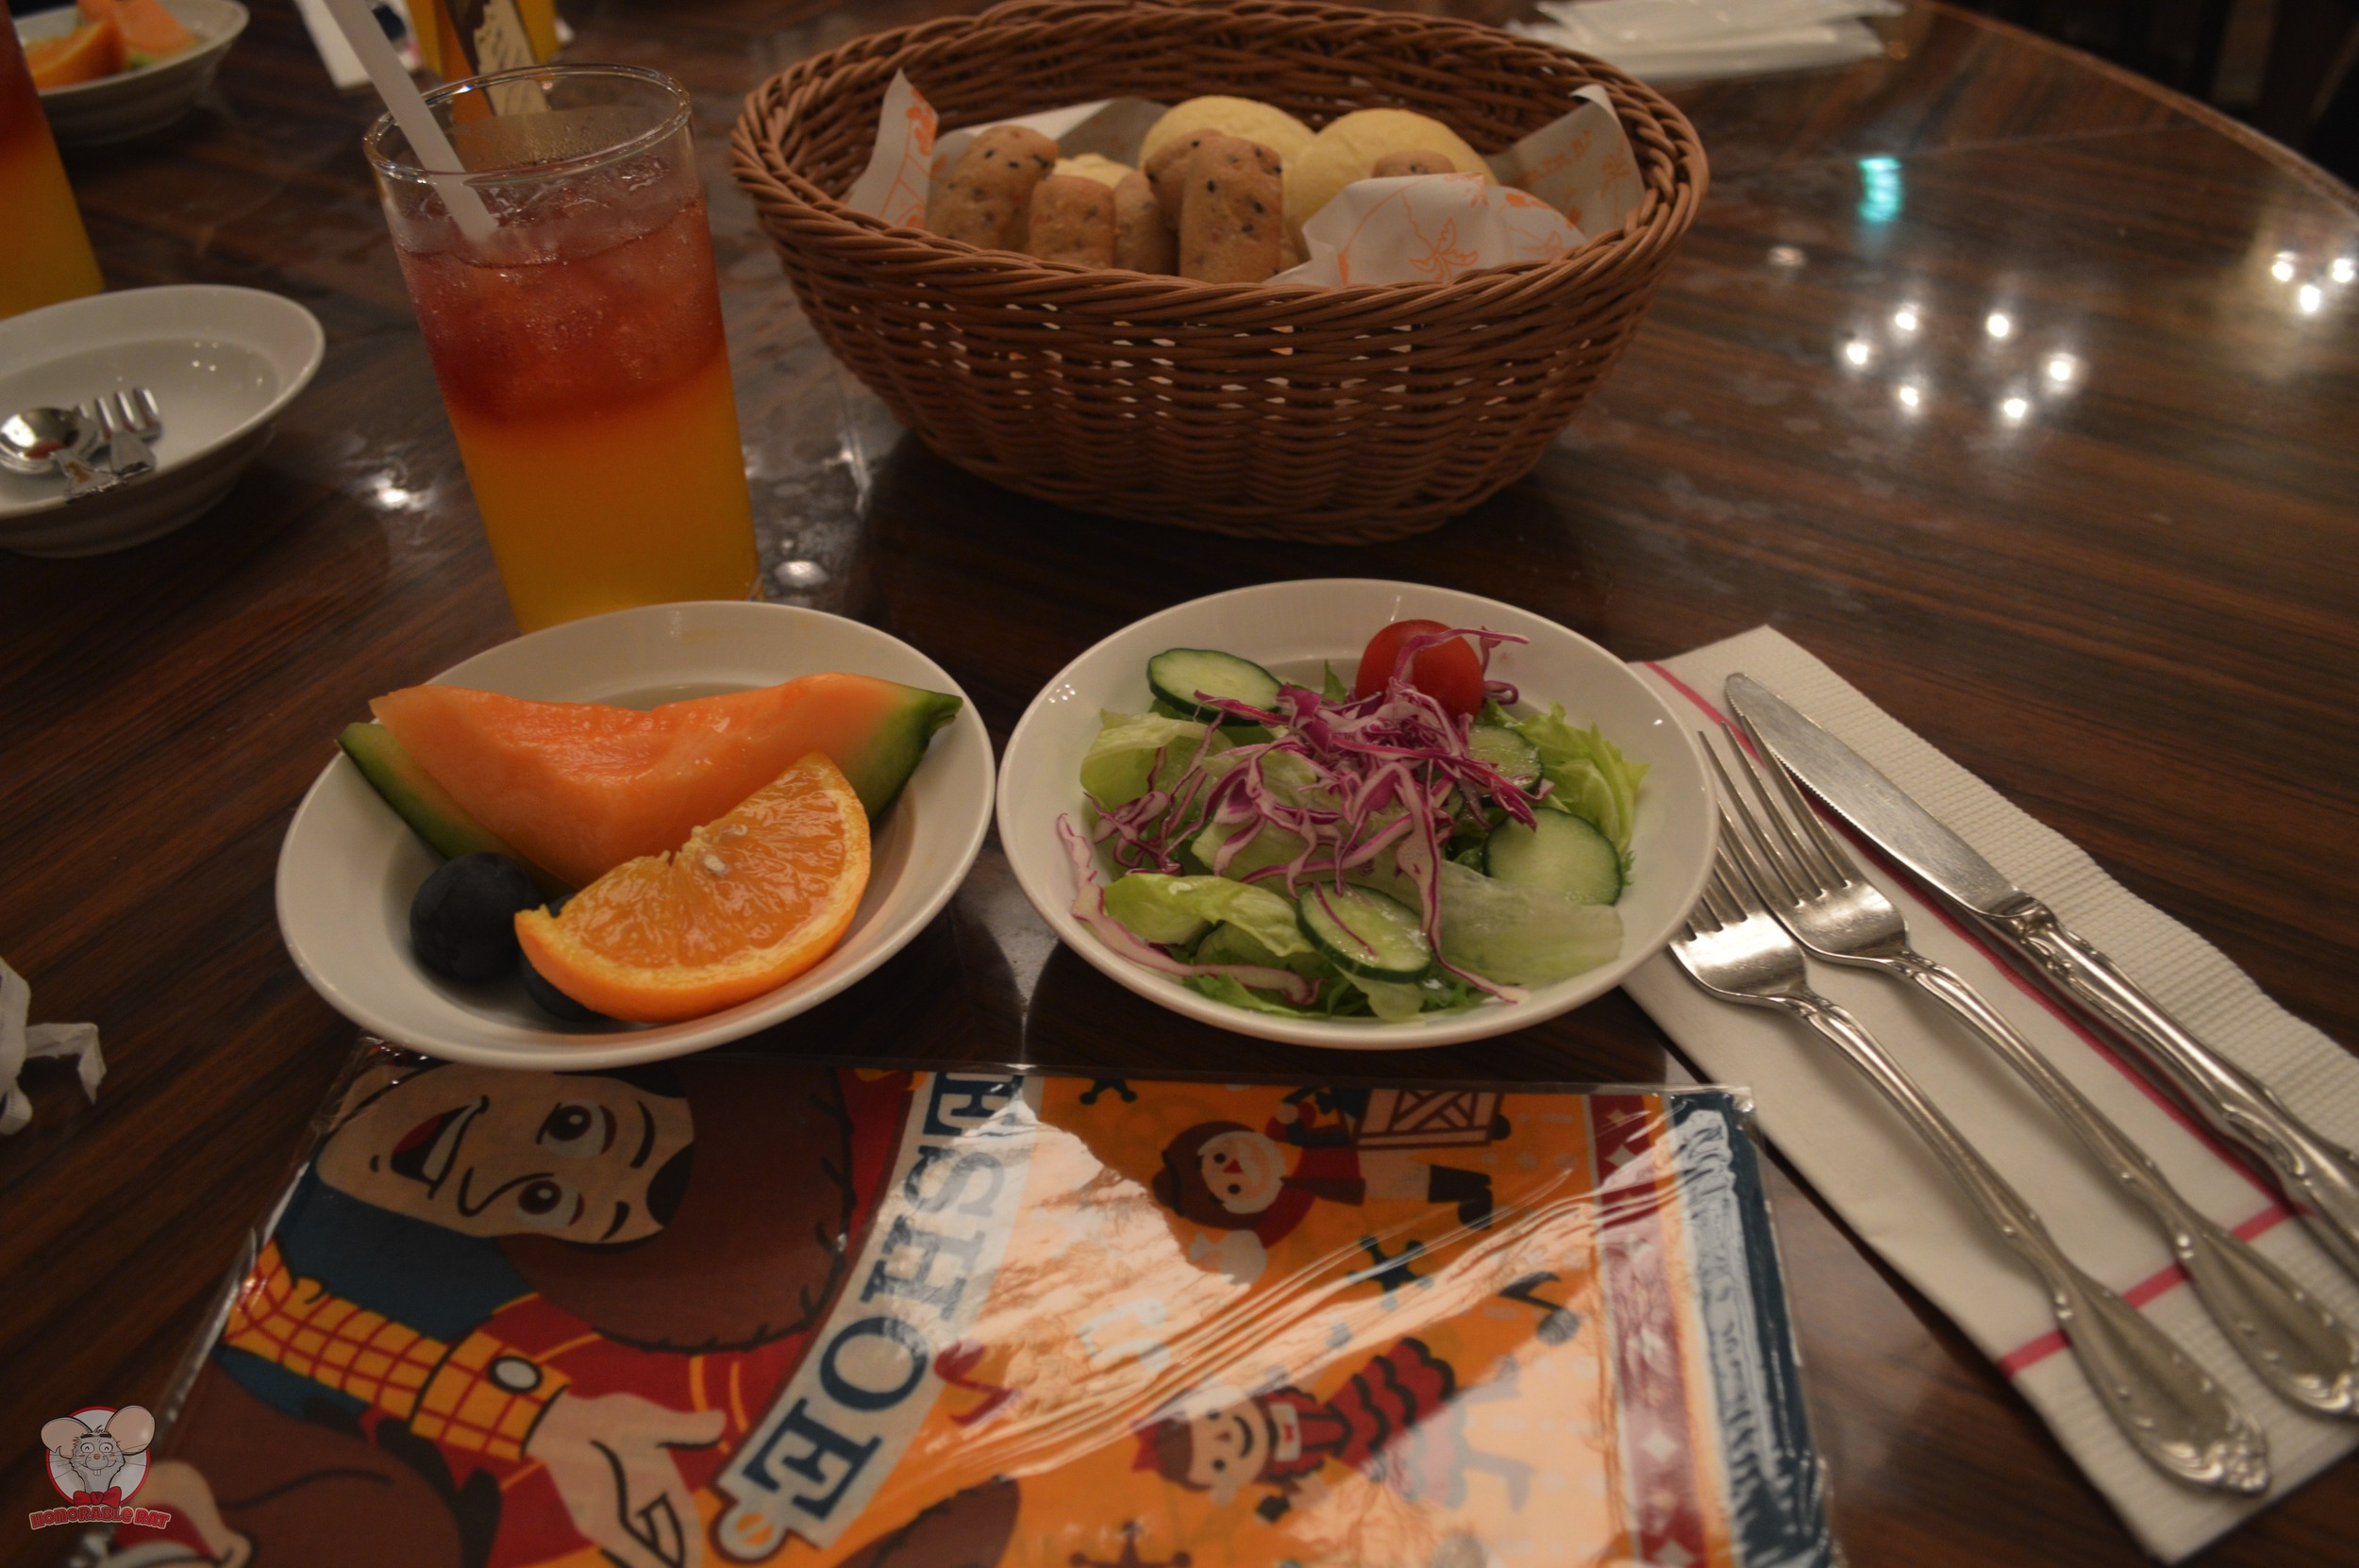 Fruits, salad, bread & drinks to go along with your breakfast